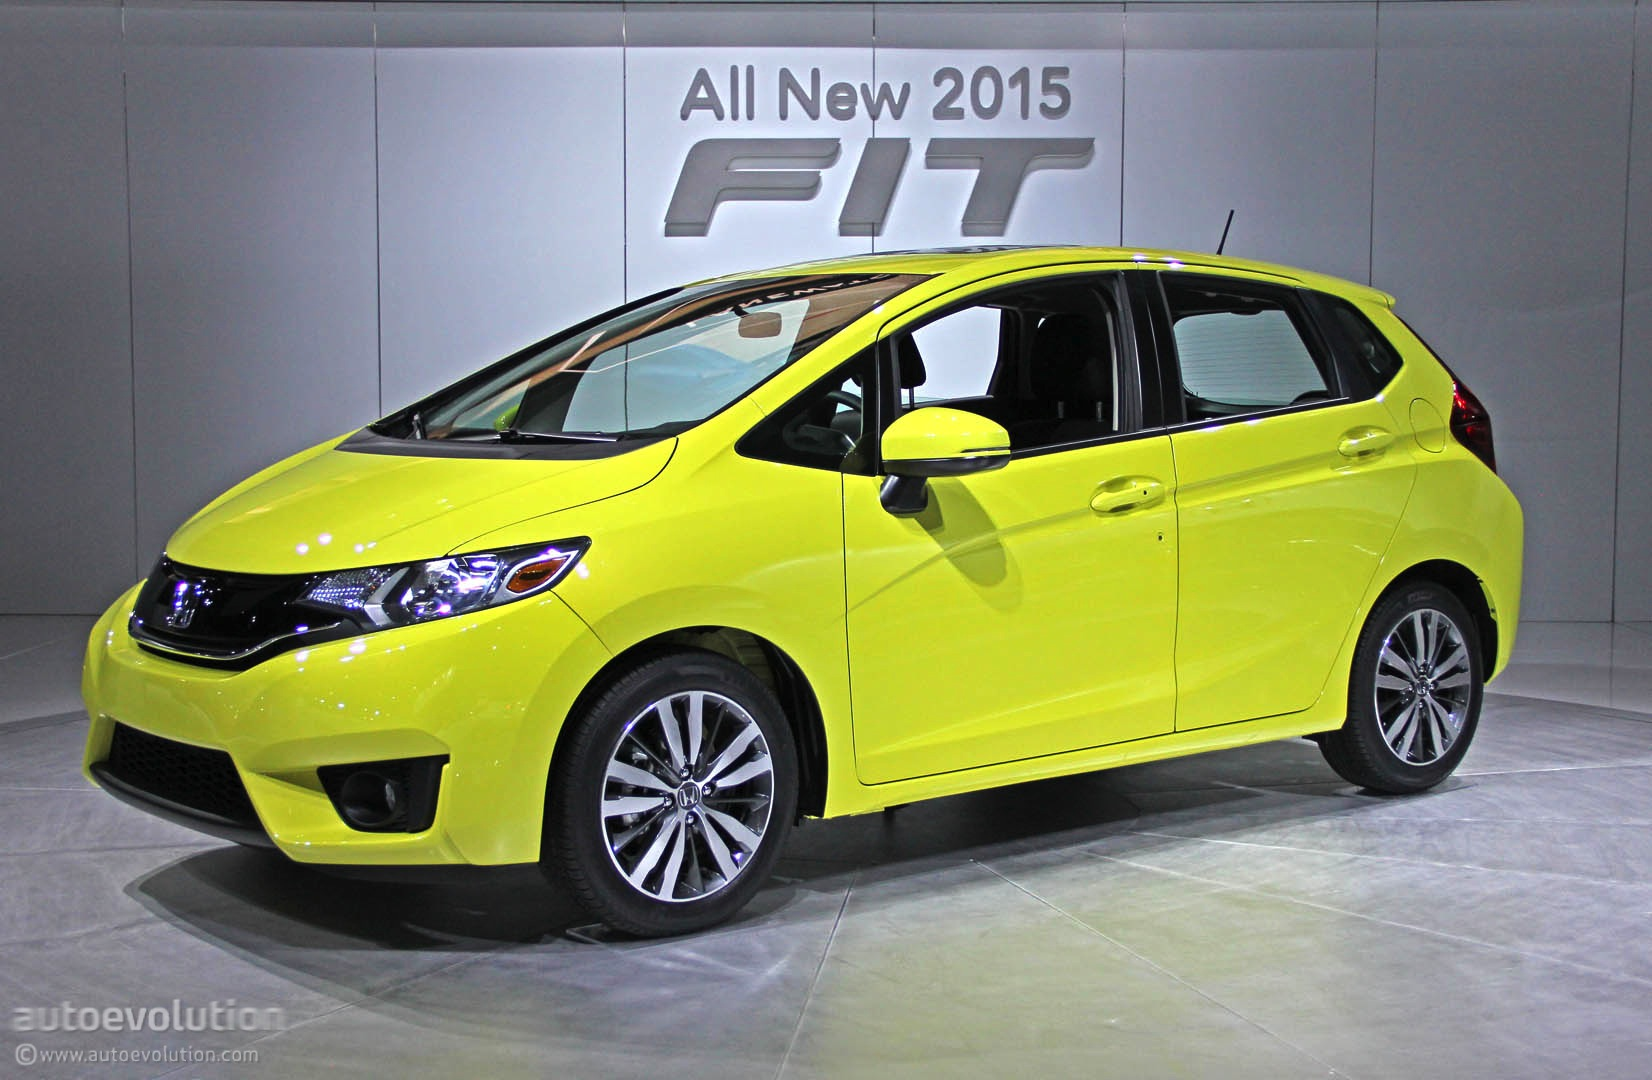 2015 honda fit debuts in detroit gets 41 mpg live photos autoevolution. Black Bedroom Furniture Sets. Home Design Ideas